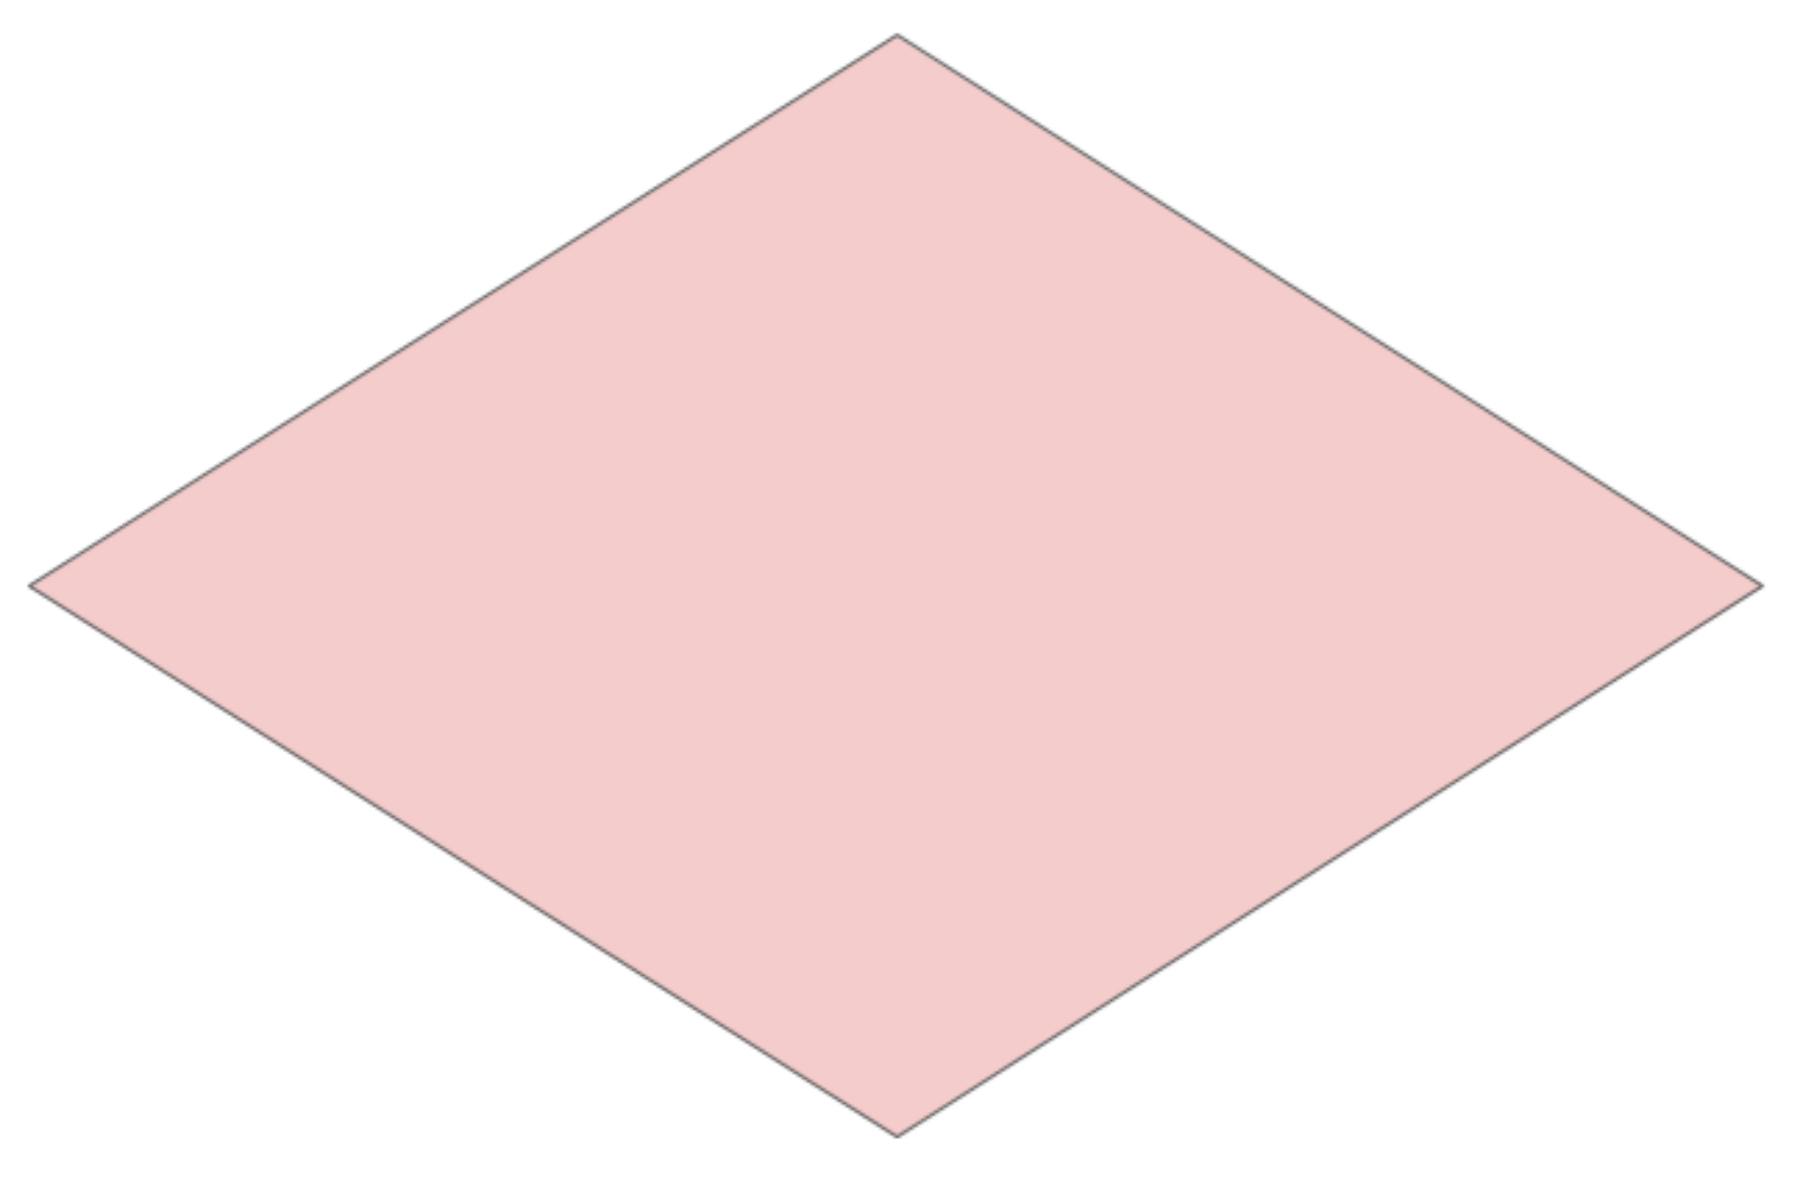 this is a polygon